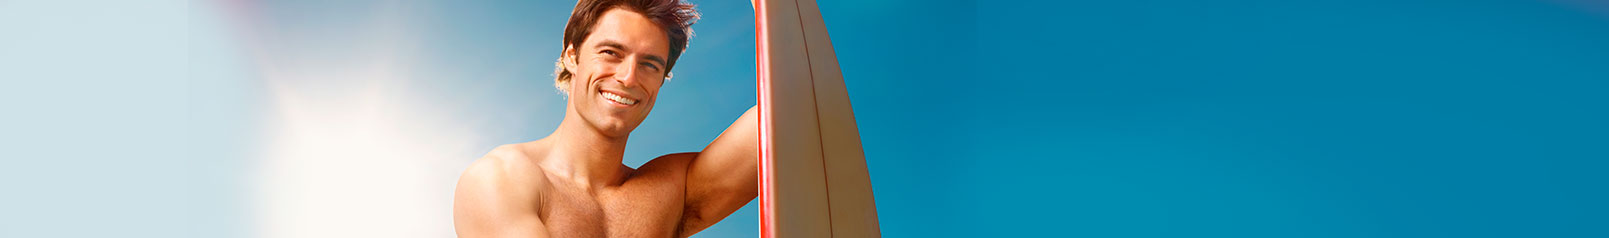 clean-cut man holding a surfing board